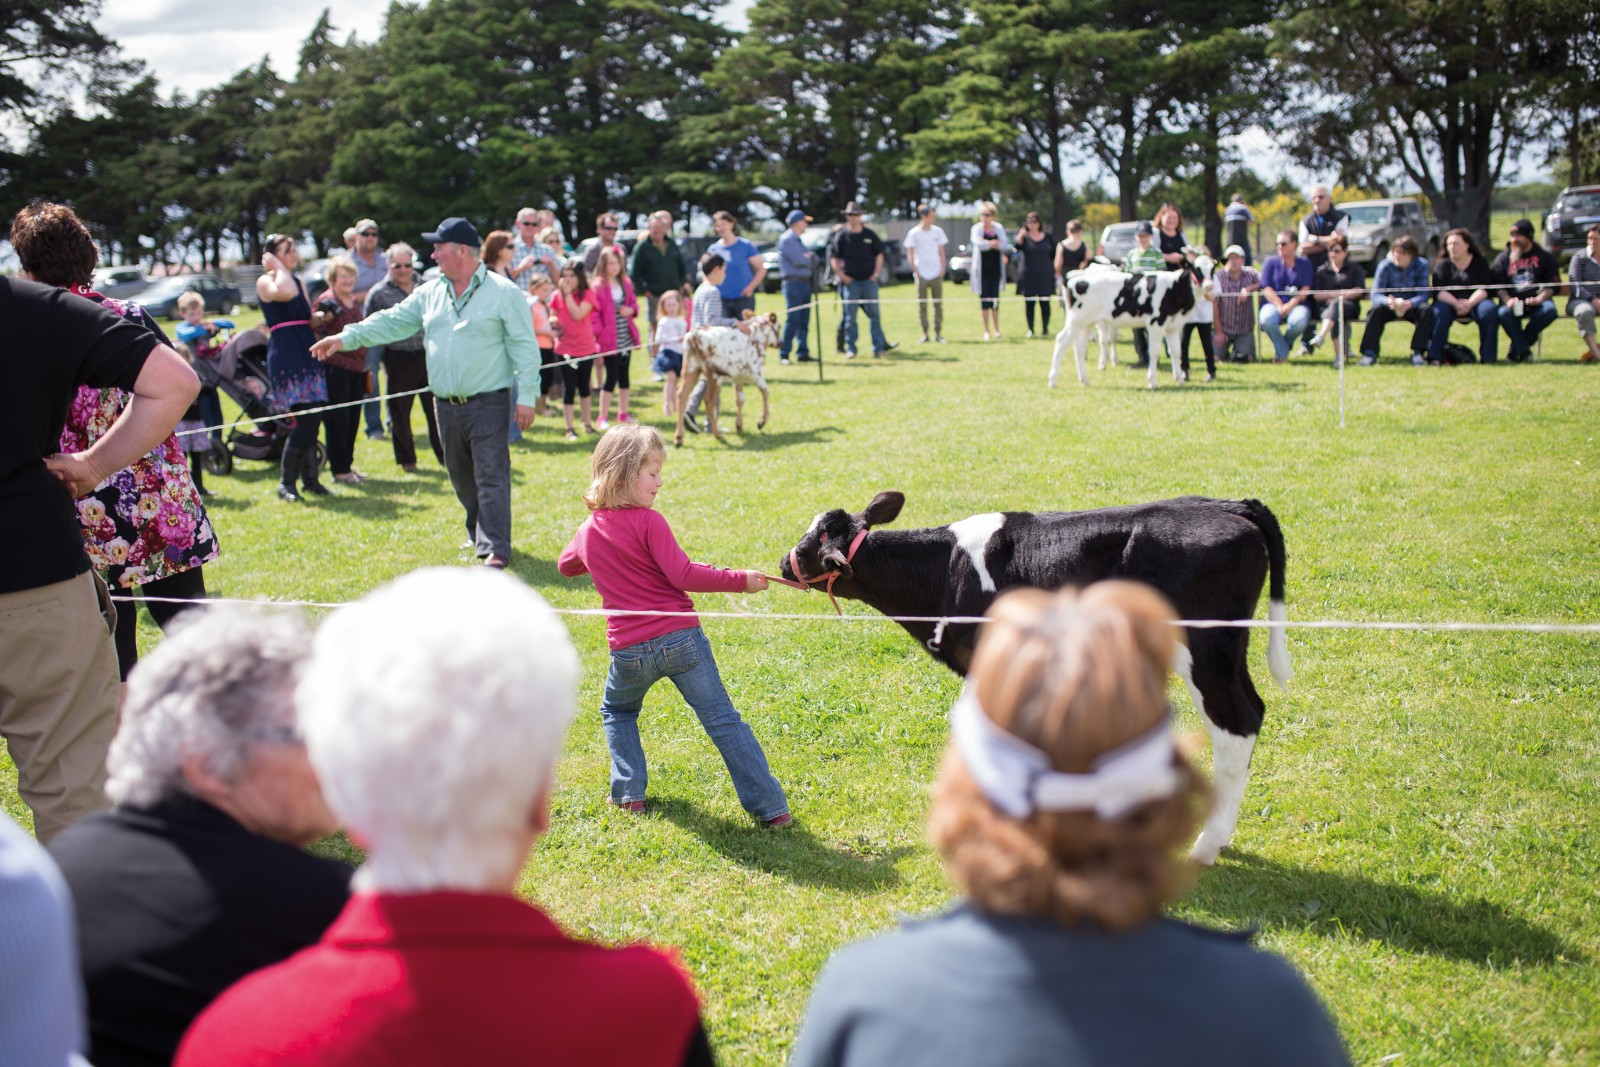 A competitor pulls her calf into the ring during the ring-craft category at the South Featherston School pet day. Kahutara School principal Clare Crawford estimates that 90 per cent of Kahutara School's students have parents who are involved in the farming industry.Calving and lambing season is a busy time for farming families, and pet days provide the opportunity for the community to take time out, get together and support their young competitors.